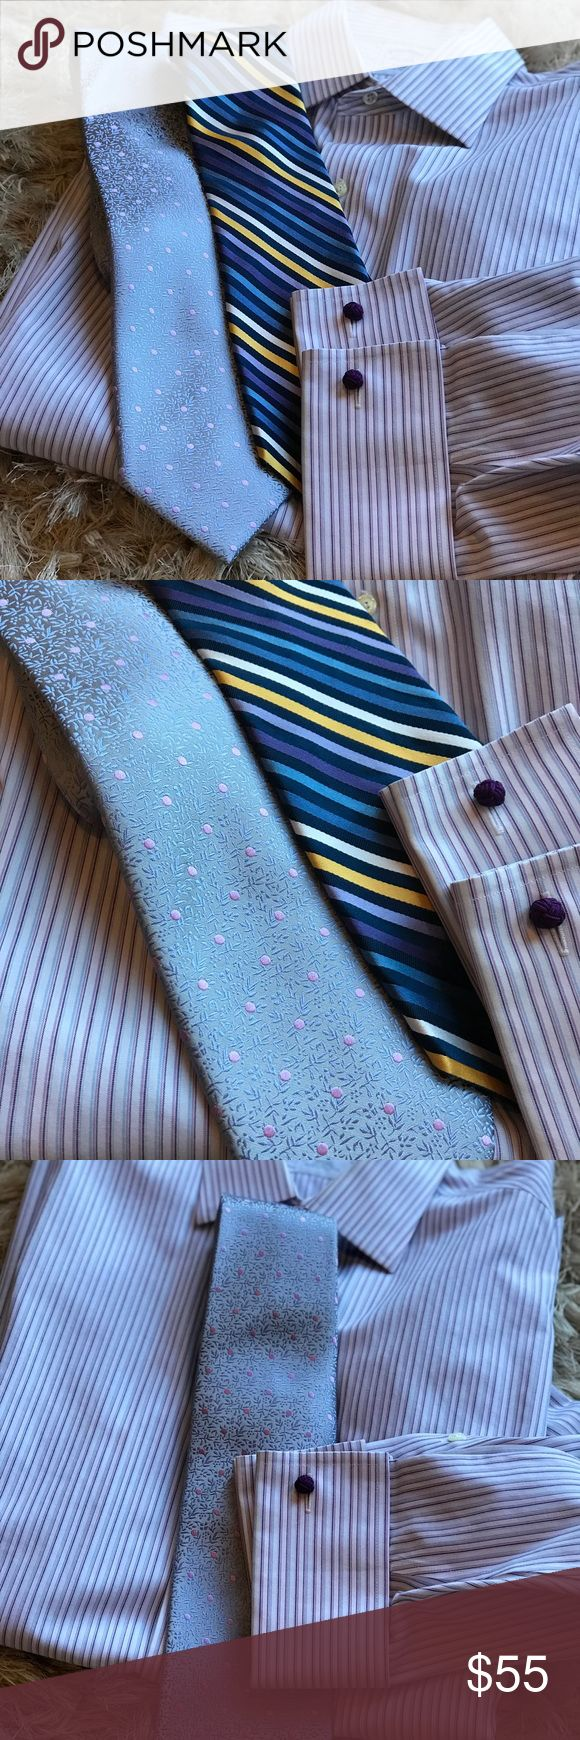 👔 Men's Bundle: BB Non-Iron + Tie 👔 Brooks Brothers Non-Iron button down French cuff shirt. Size 15 1/2 - 34. Purple silk knot cuff links included. White with pale purple and blue stripes. Tommy Hilfiger 100% silk tie with blue, purple, and yellow stripes. Shirt is in very good used condition; only sign of wear is slight discoloration on inside of collar, as shown. Brooks Brothers Shirts Dress Shirts